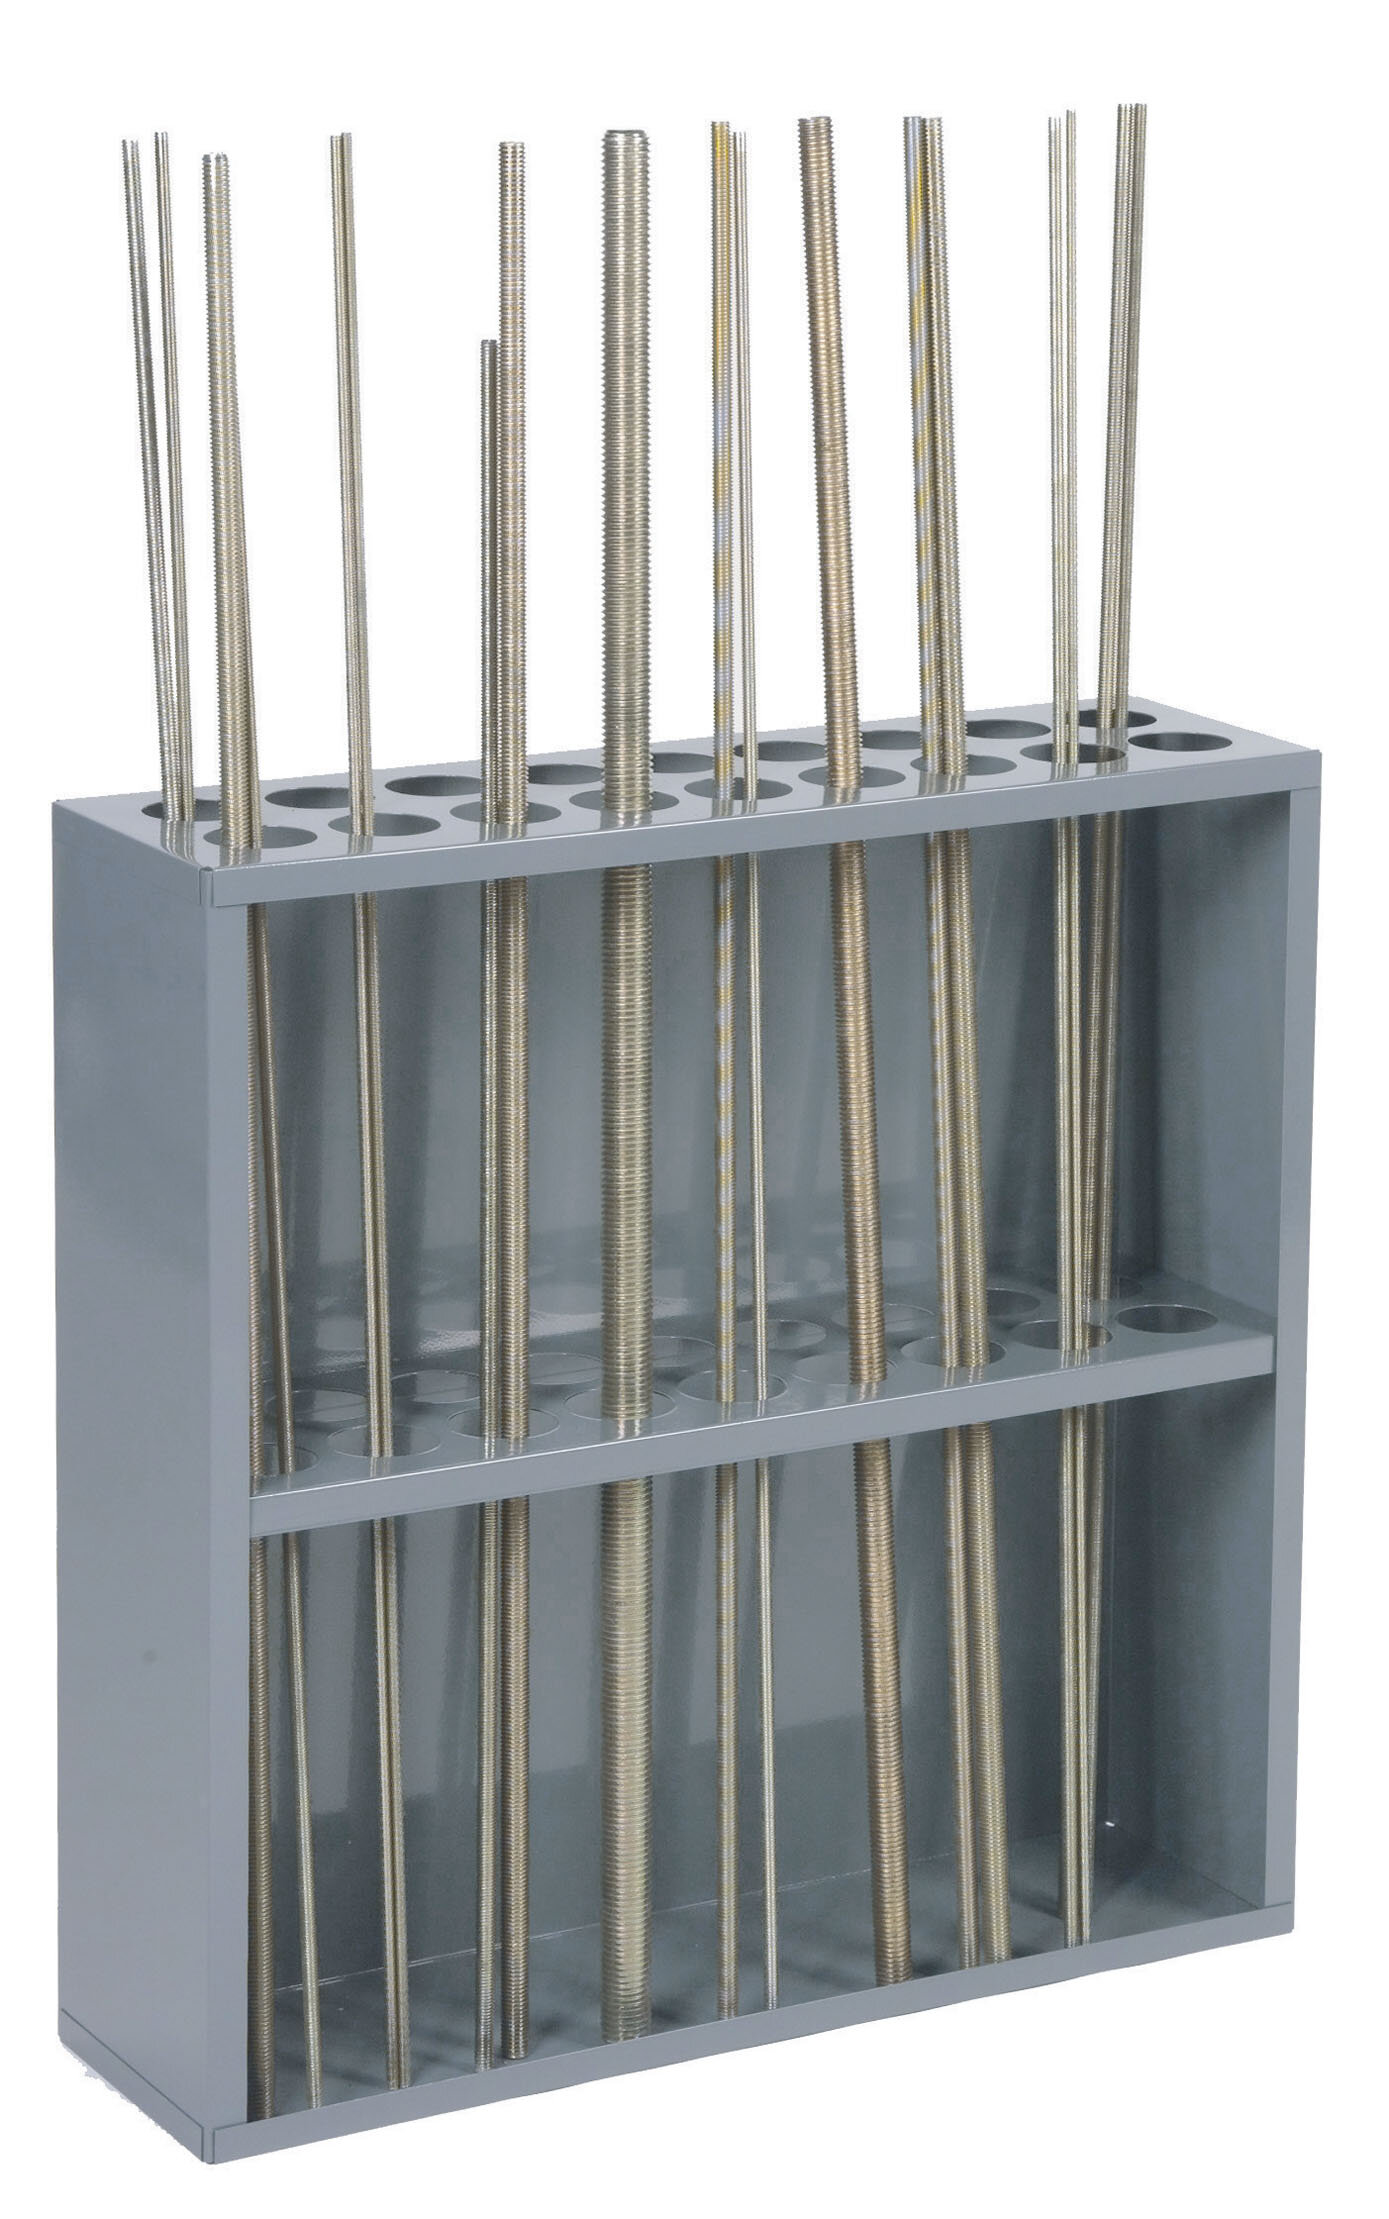 Durham Manufacturing Sturdy Steel Threaded Rod Rack | Wayfair